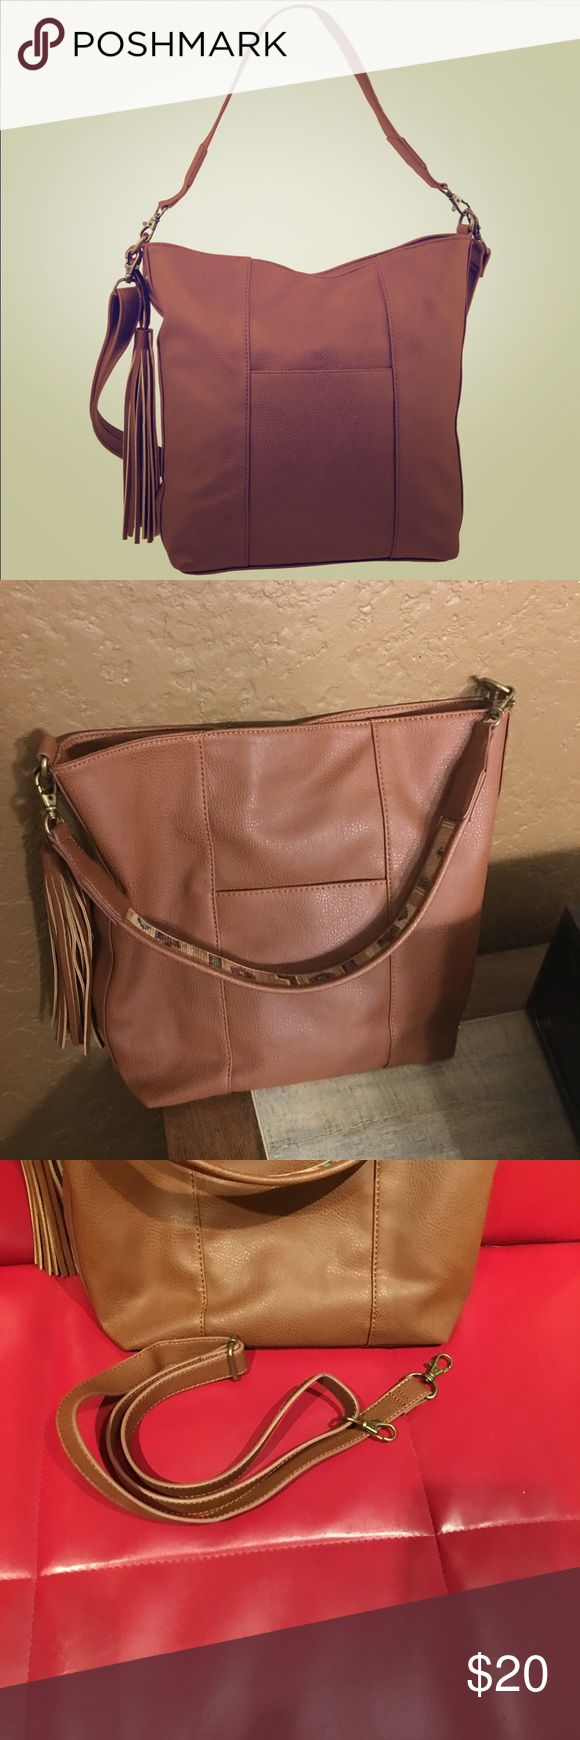 """Carlos Santana bucket tour bag Used very briefly, in excellent condition.  Vegan leather. Color is whiskey.  Comes with 2 straps.  Removable tassel detail.  Inside has zip pocket in one side me 2 slip pockets in other side.  Measures 15"""" x 11.5"""" x 5"""". Carlos Santana Bags Shoulder Bags"""